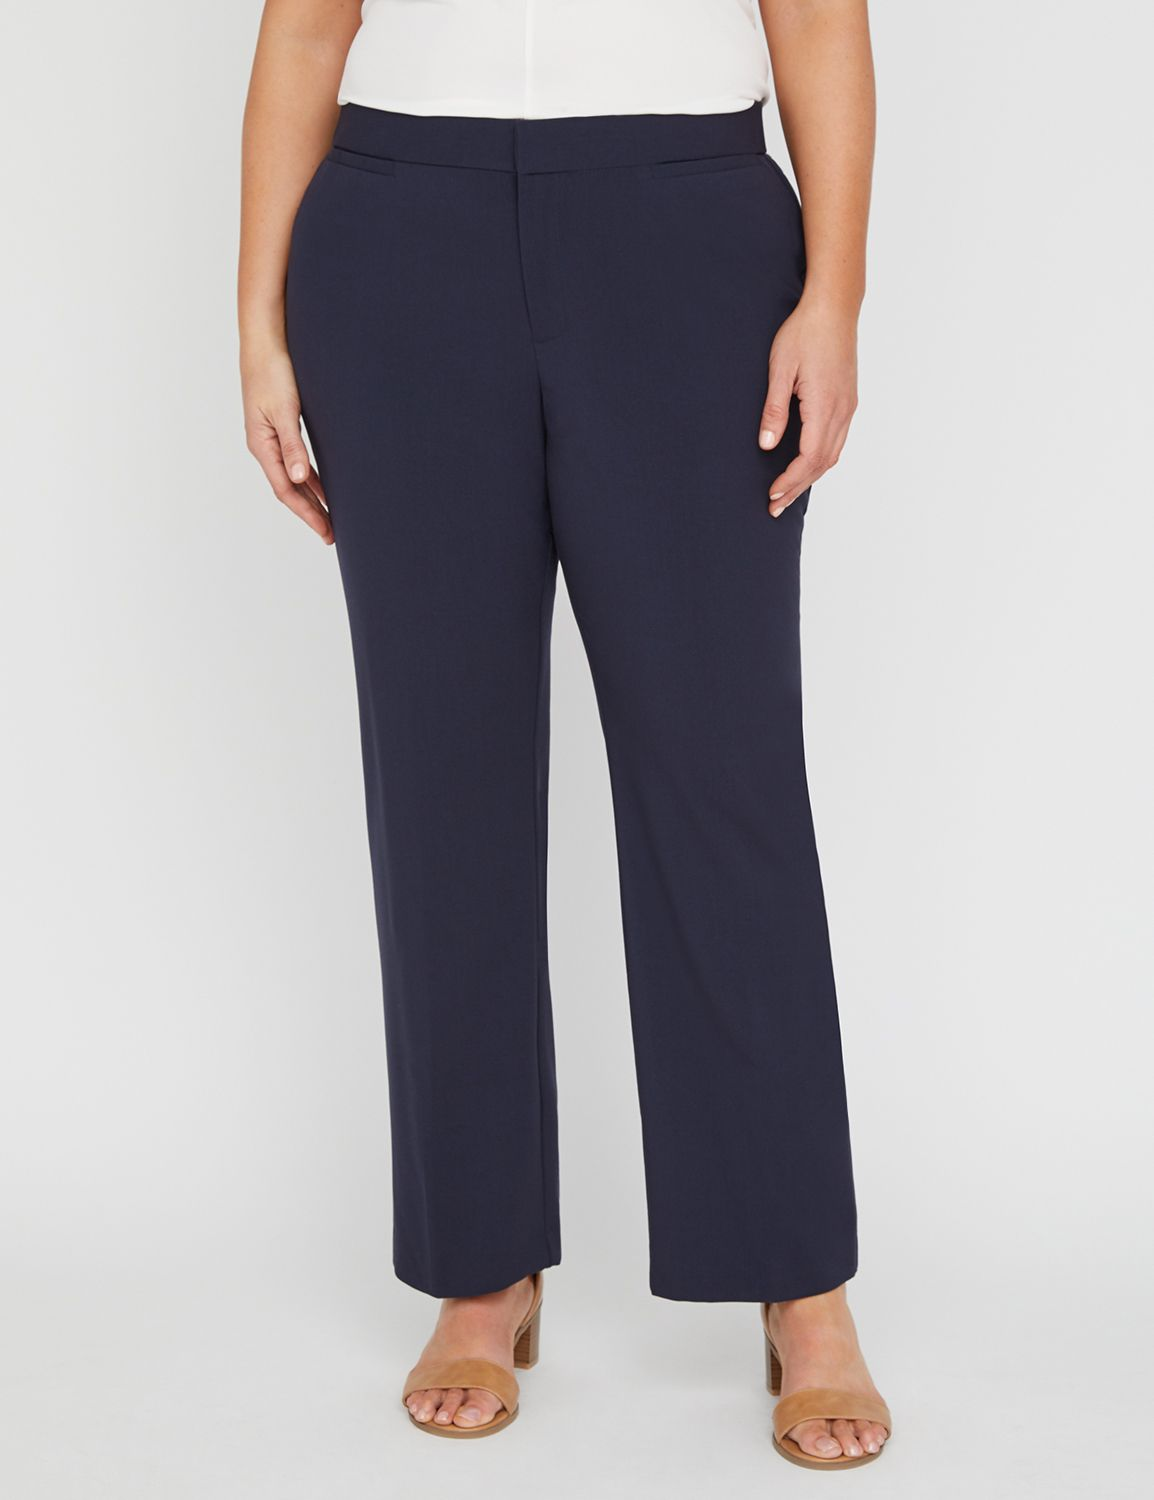 Right Fit Pant (Moderately Curvy) Right Fit Pant (Moderately Curvy) MP-300043676